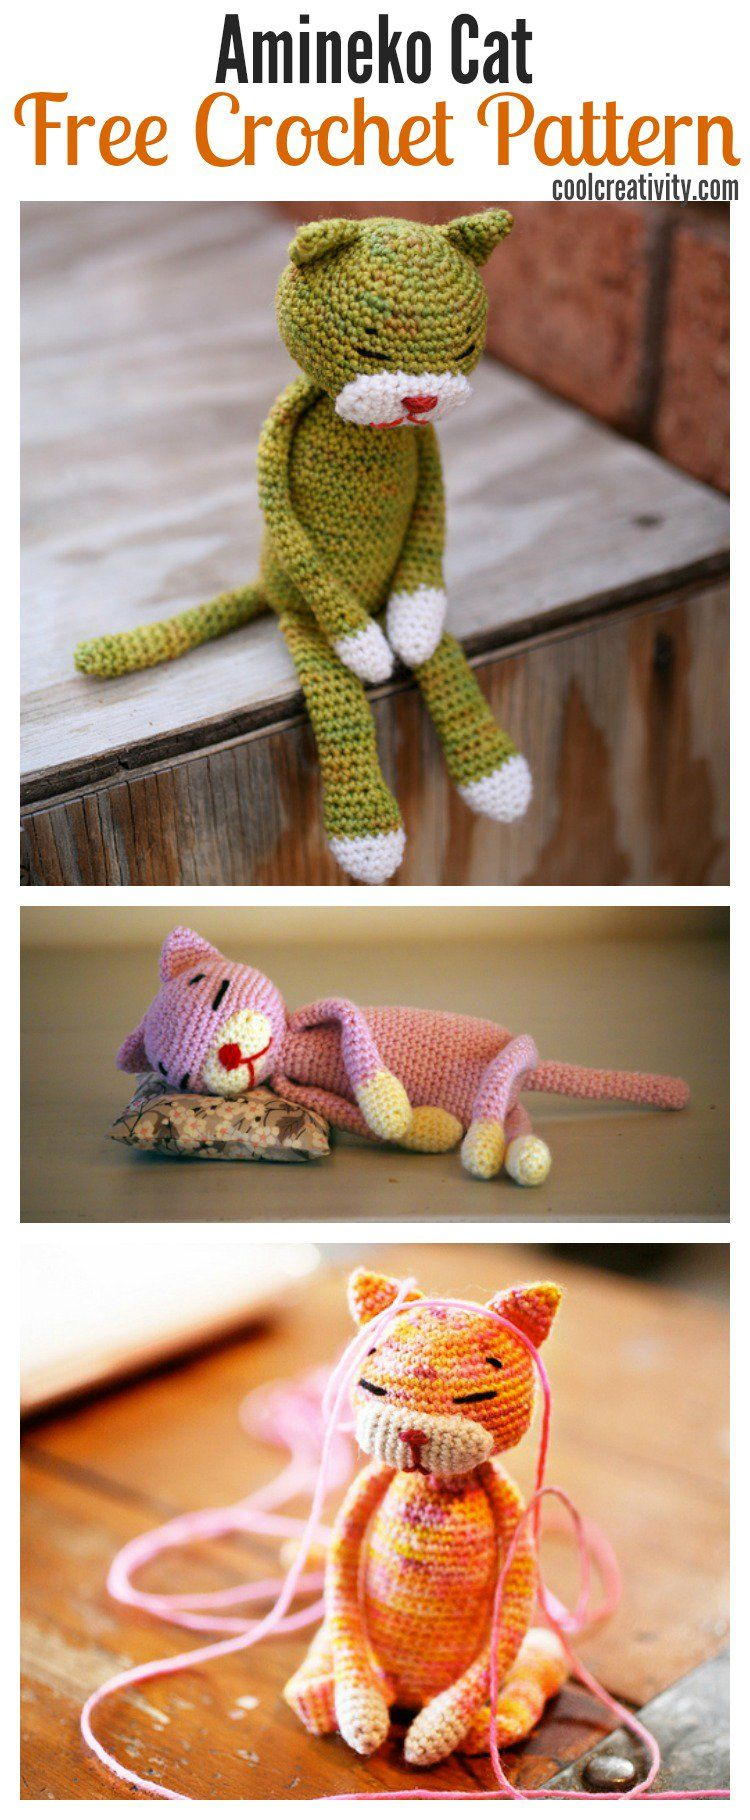 Crochet Amineko Cat with Free Pattern | Crochet cat pattern ... | 1820x750